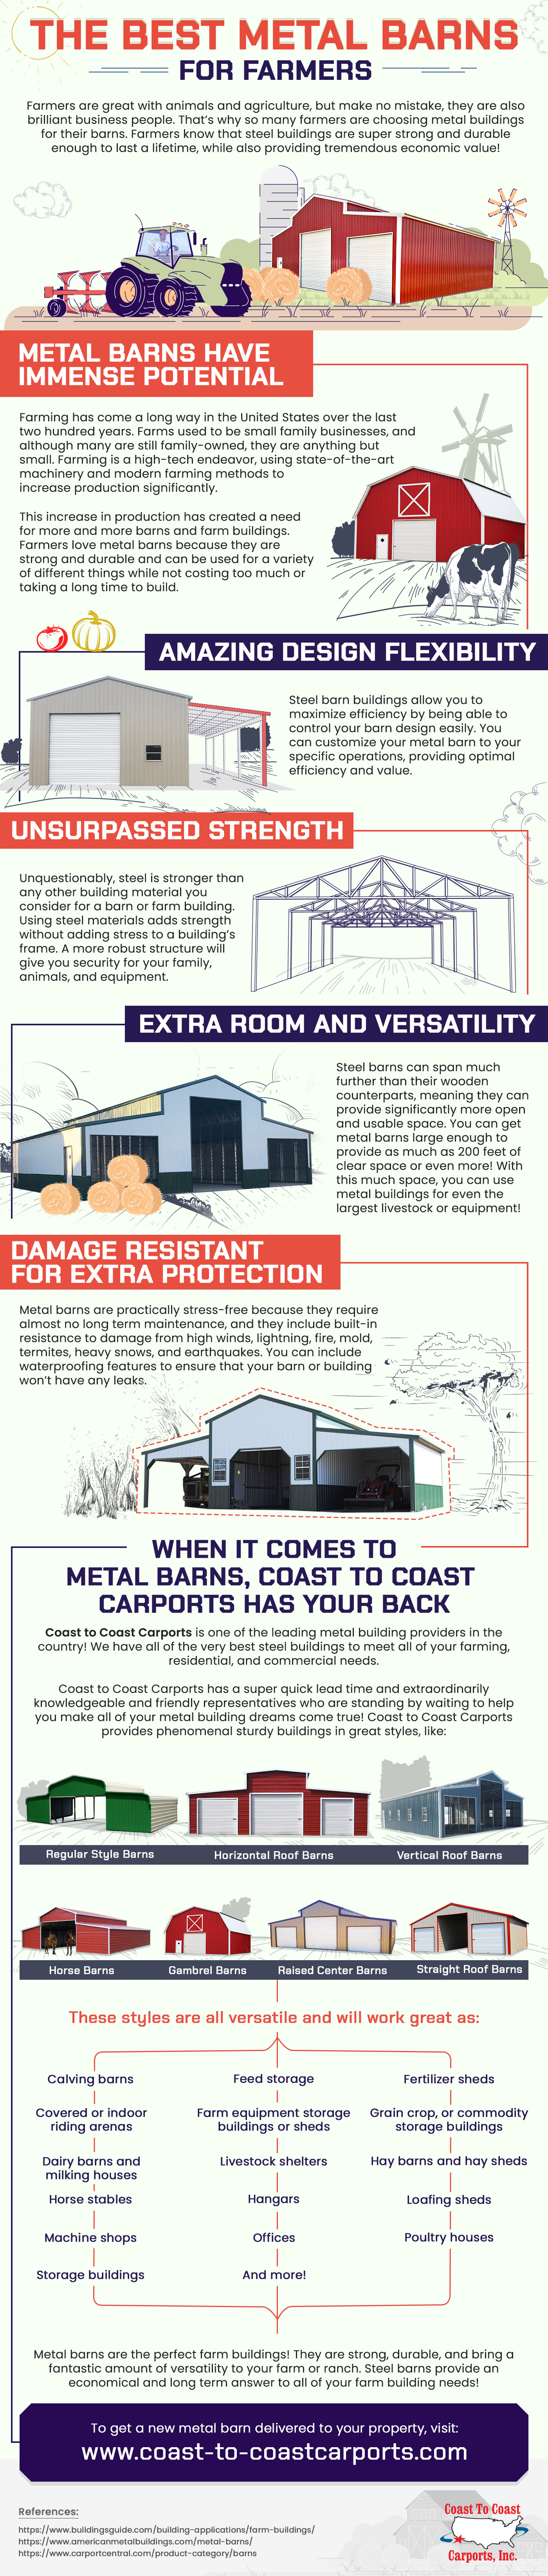 The Best Metal Barns for Farmers - Infographic